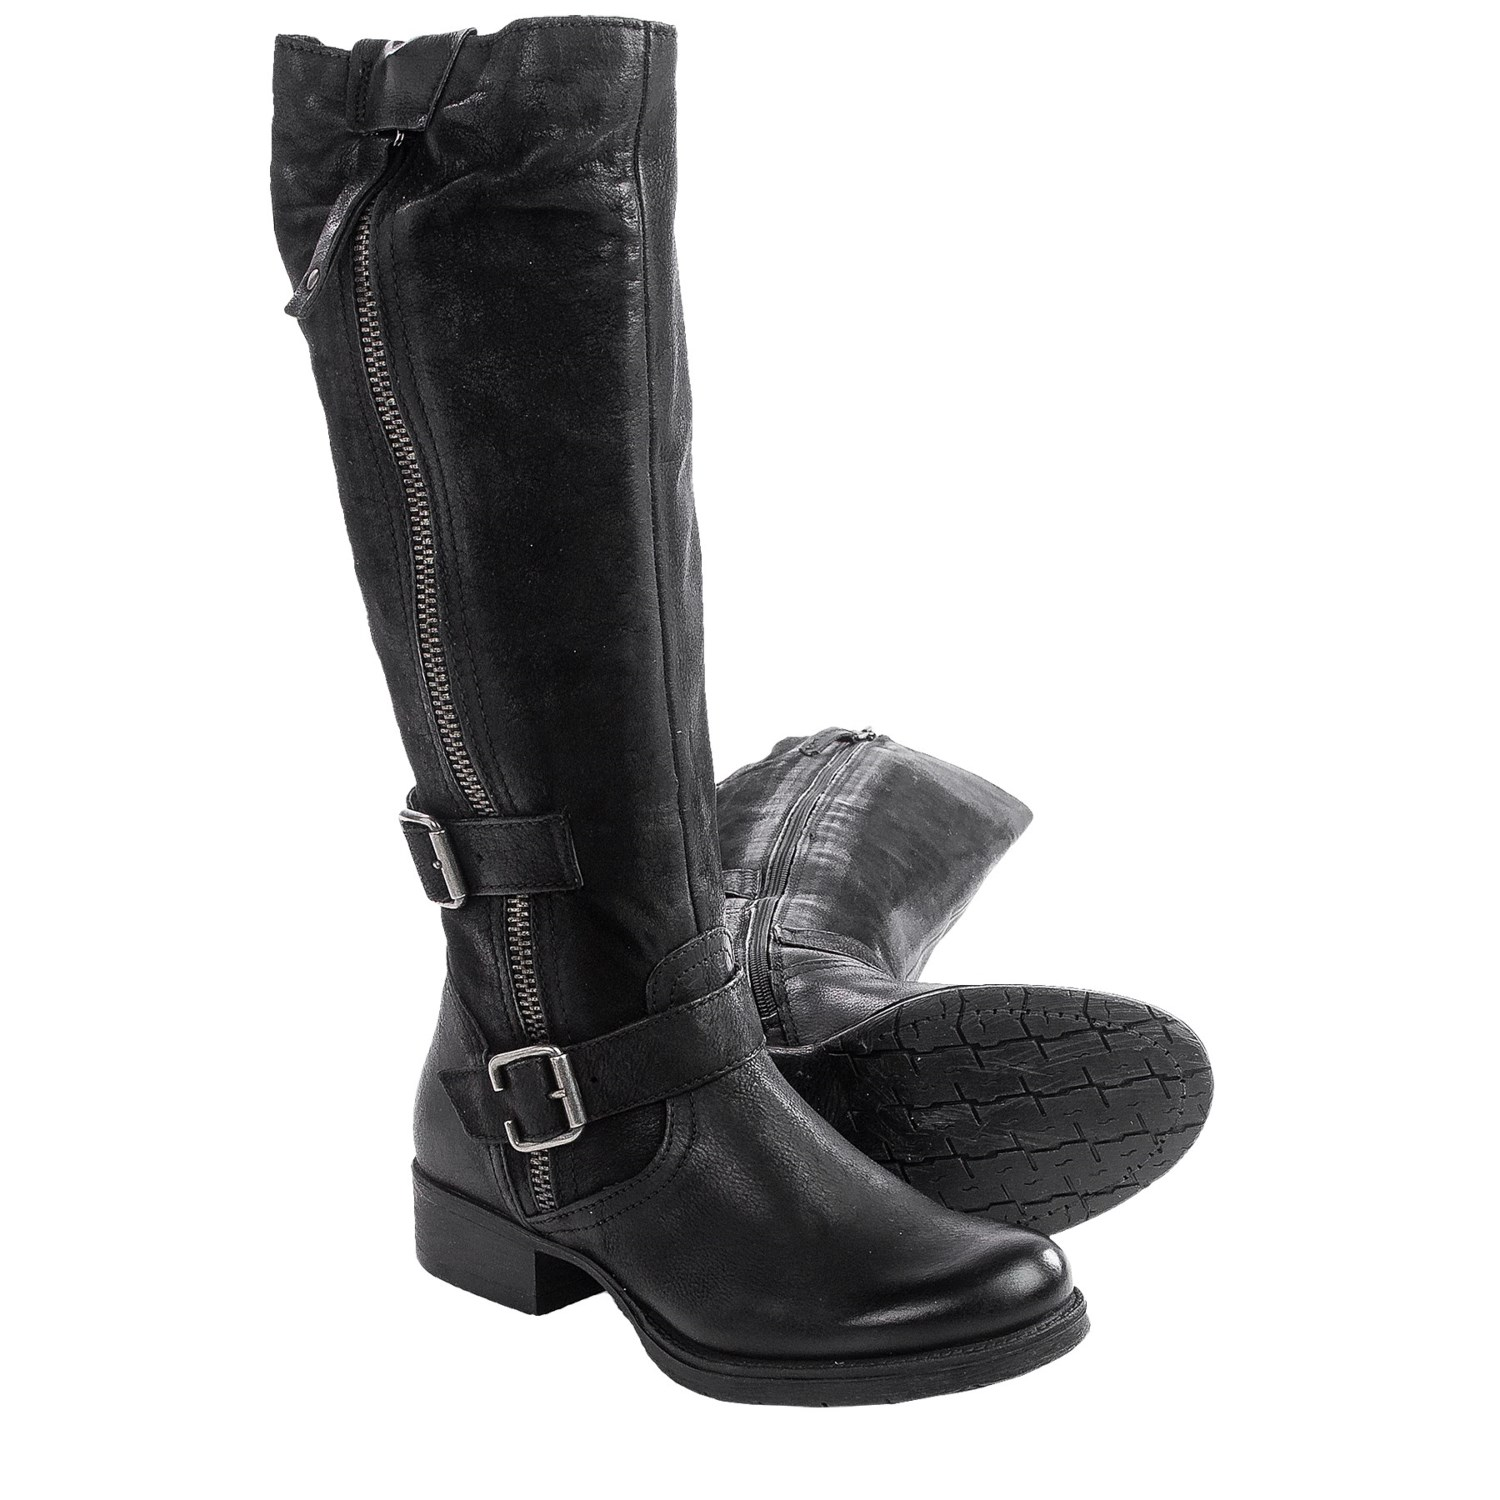 miz mooz holden knee high leather boots for save 52